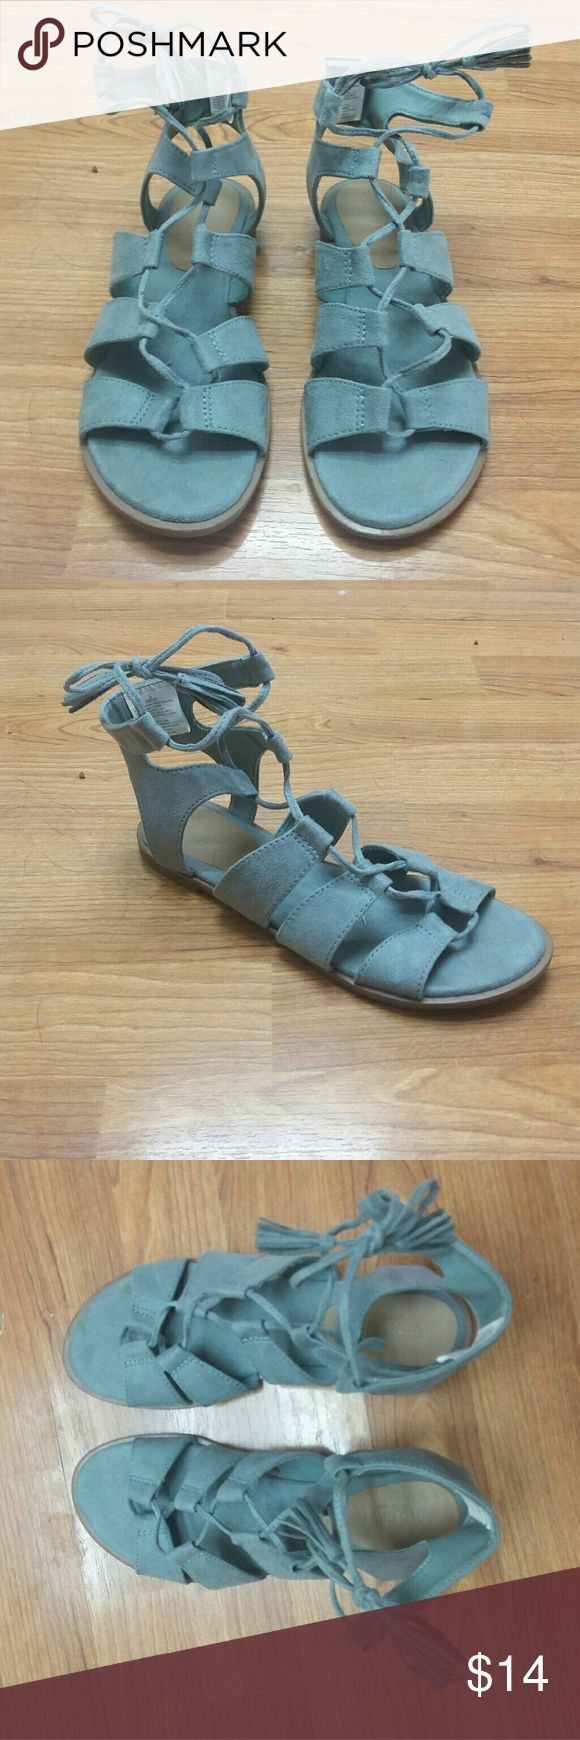 EUC Old Navy Suede Teal Gladiator Sandals Sz. 7 Excellent used condition. Soft teal suede gladiator sandals by Old Navy. Flexible Sole and overall very comfortable shoe. Only worn a few times. Thanks for looking! Old Navy Shoes Sandals